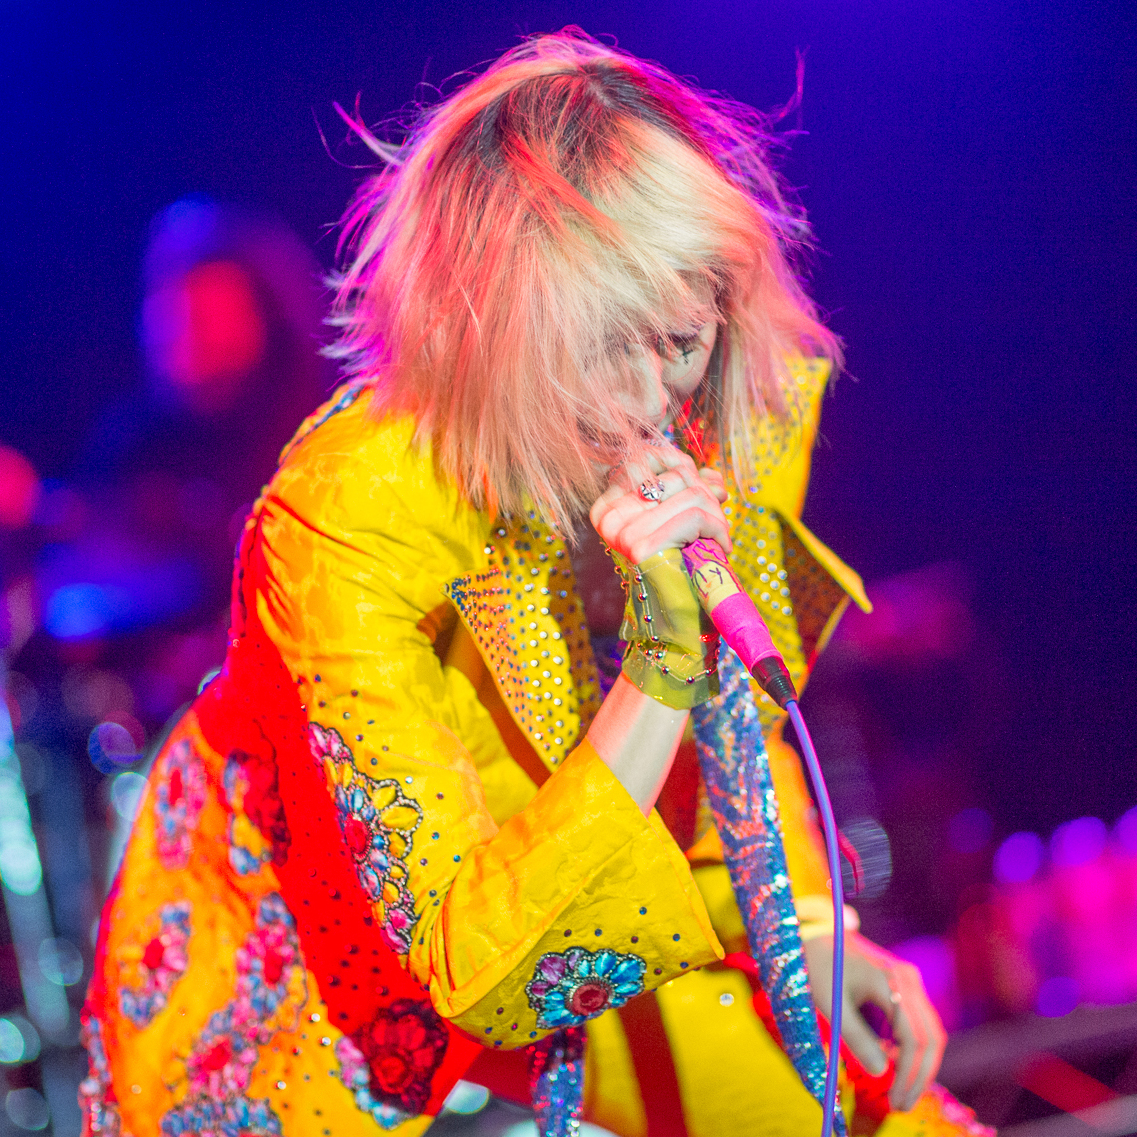 Karen O led the Yeah Yeah Yeahs through a set at Stubb's that included songs from the band's new album, Mosquito.